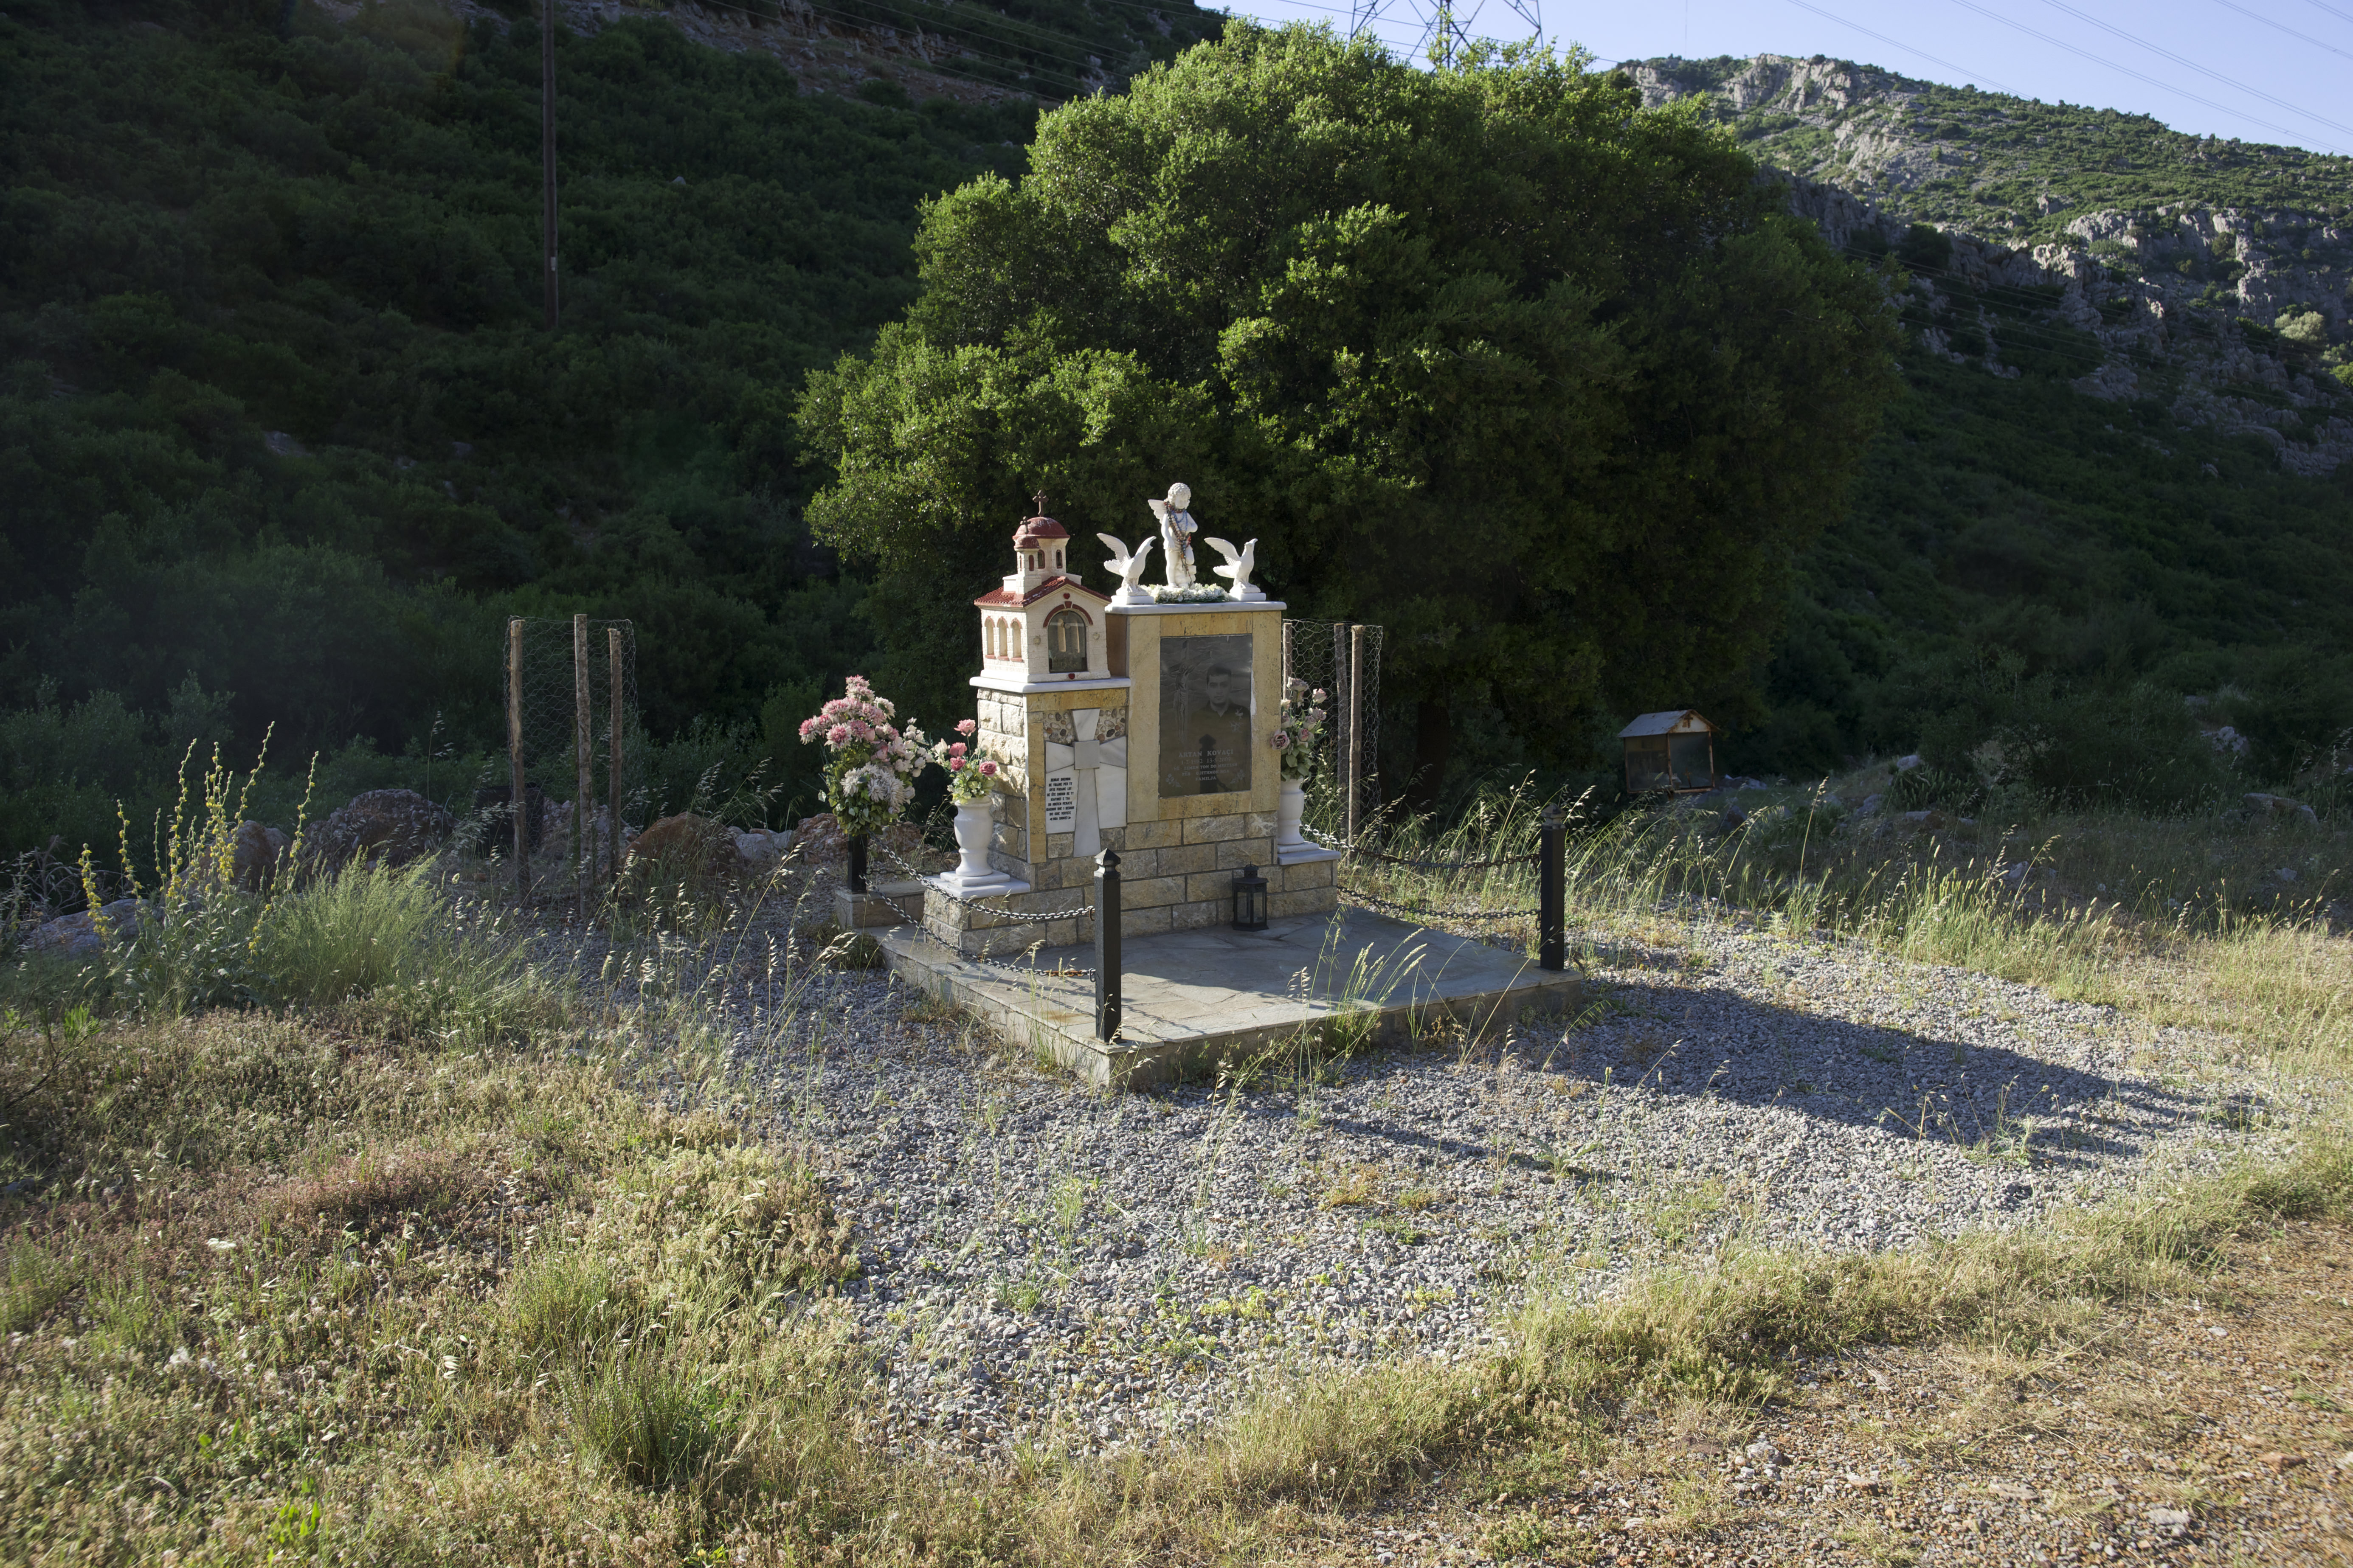 Fig. 7 Memorial of a deadly accident, on the national road Livadia-Amfissa